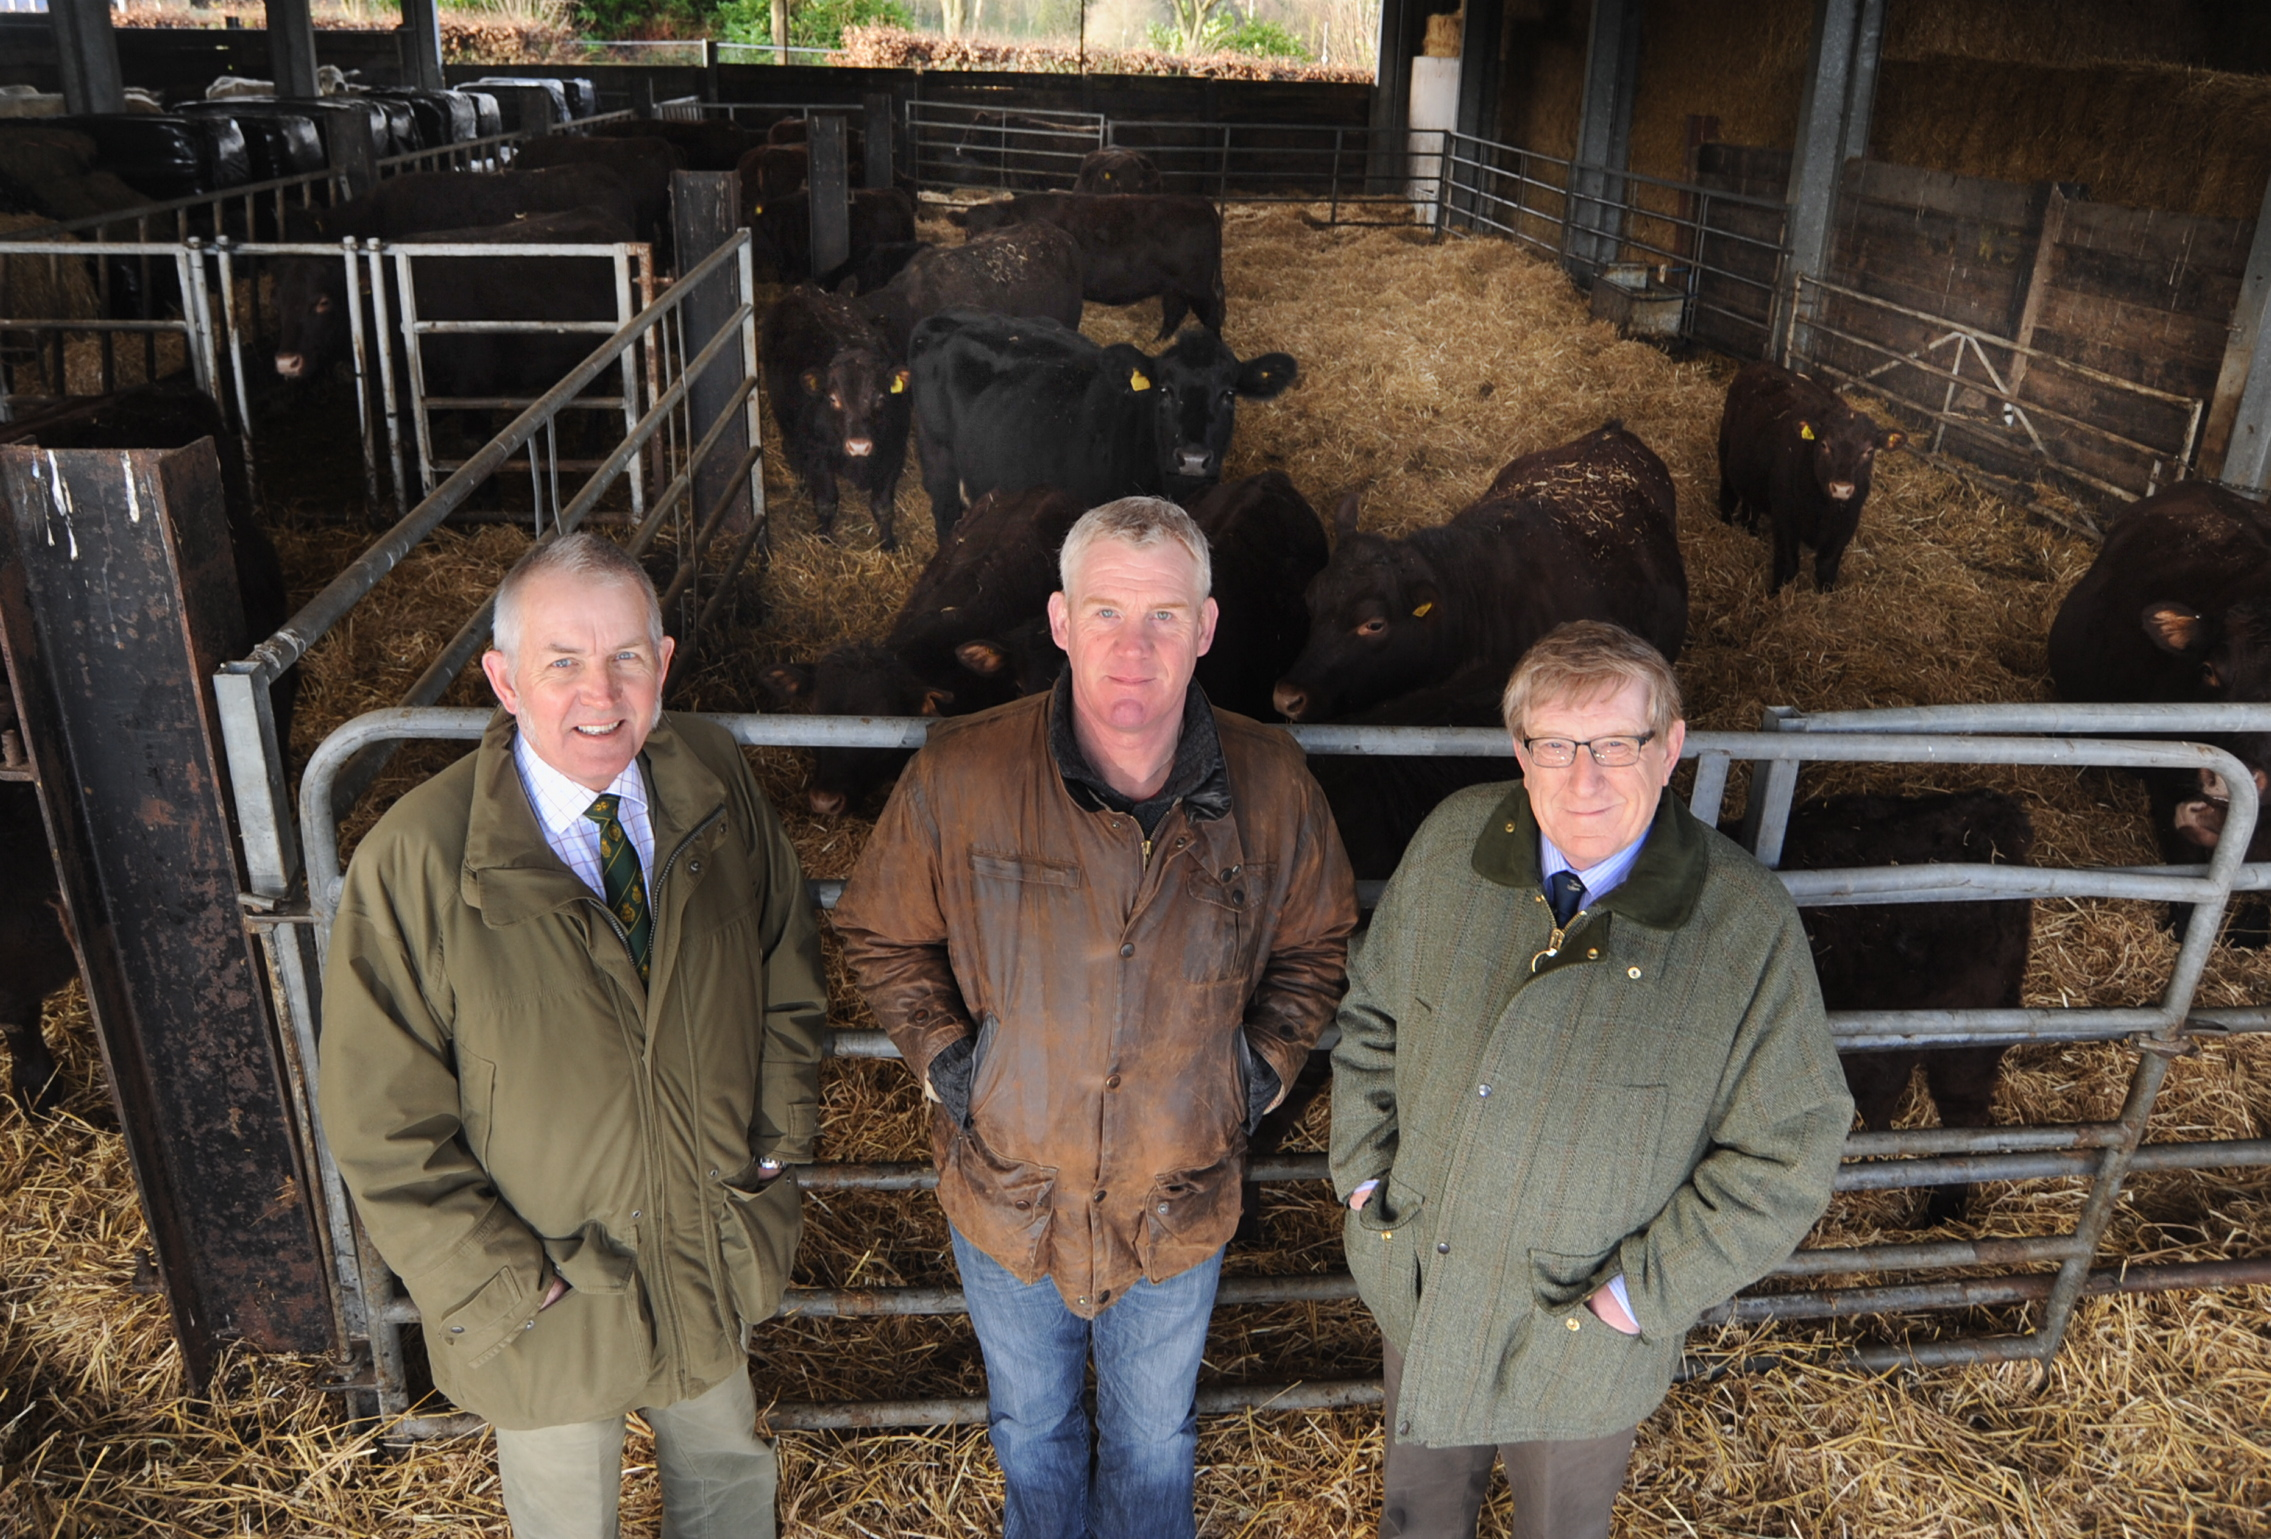 left to right - Gordon Gatward, Charlie Weetman and Richard Fonge from the Kenilworth Show organising committee